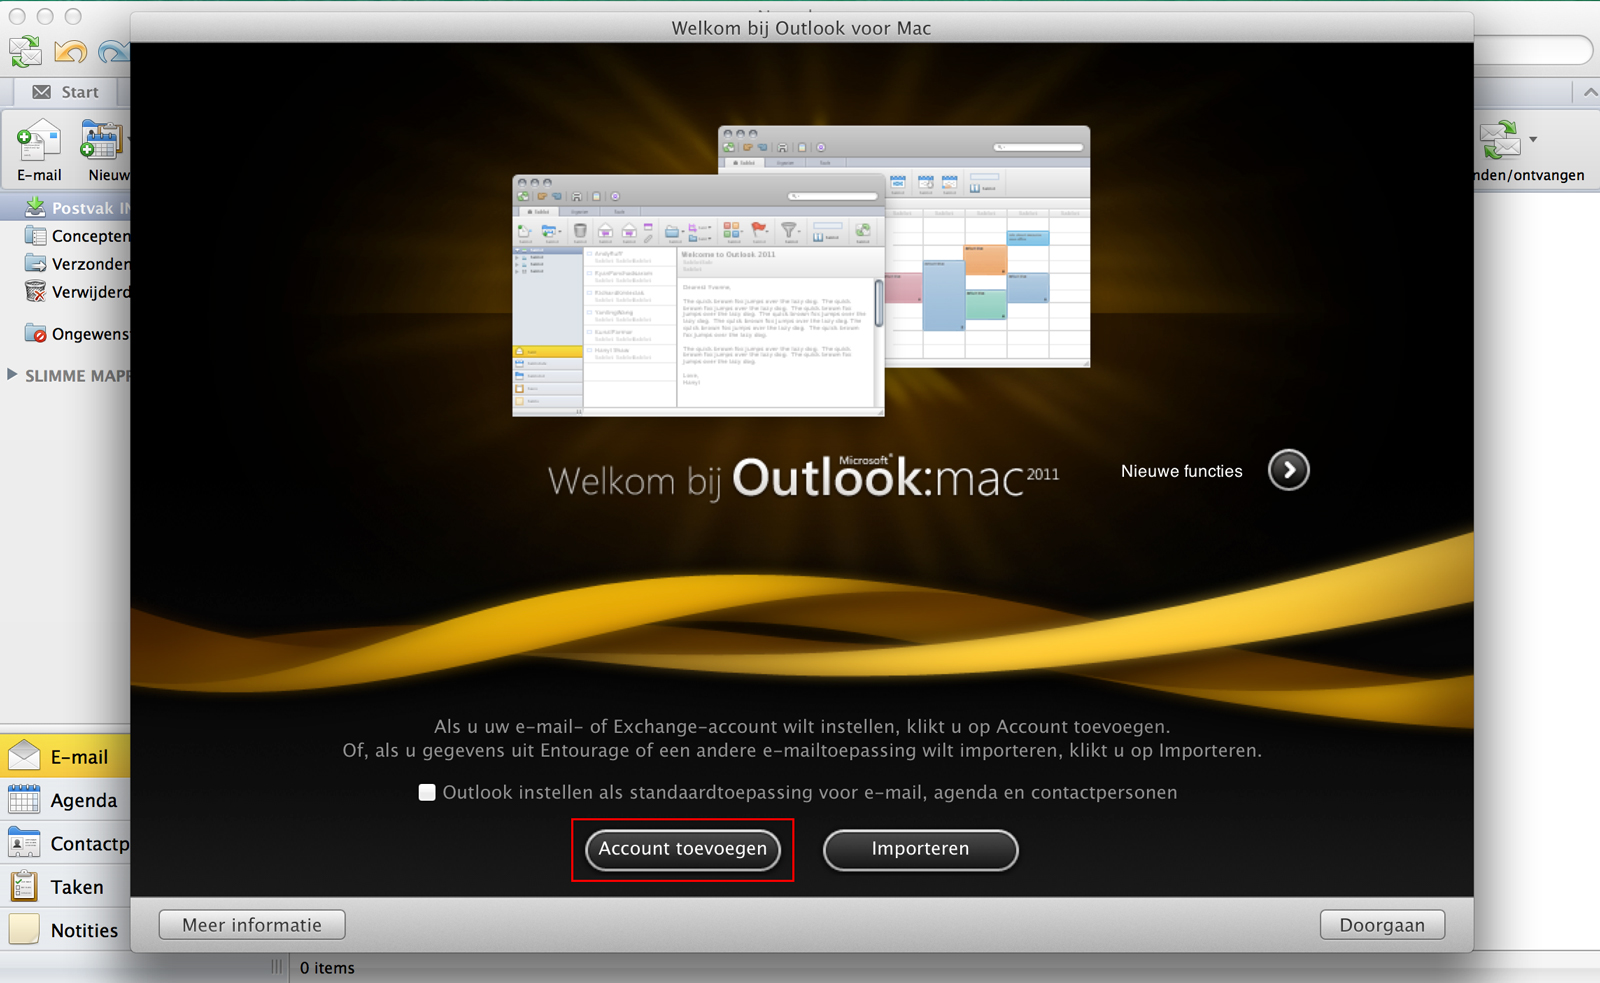 welkom bij outlook 2011 for mac account toevoegen importeren